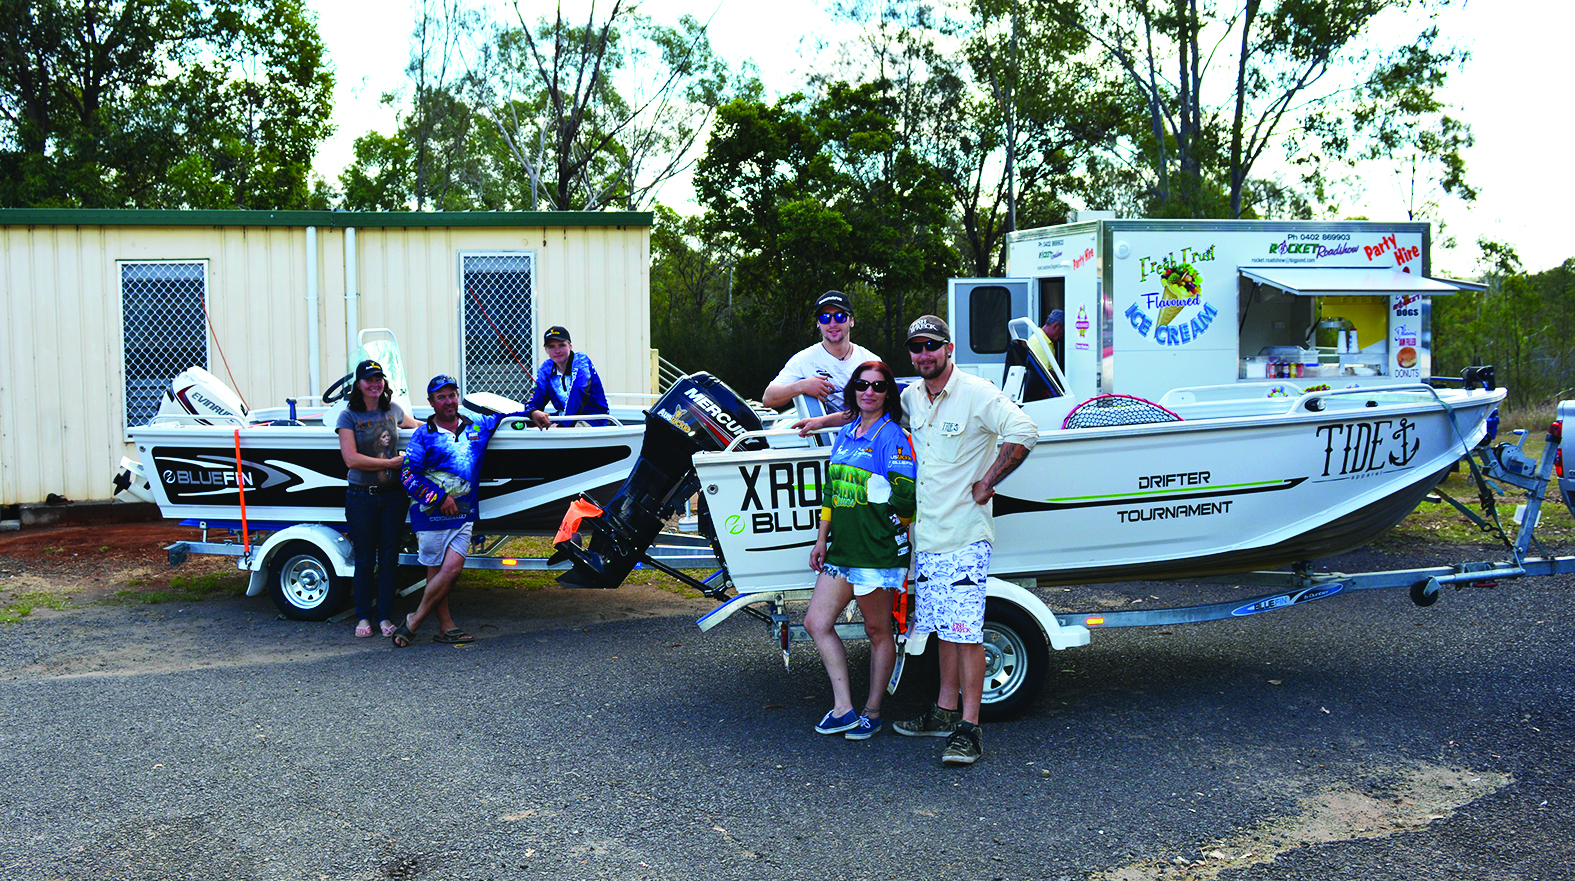 Bluefin boat pairs. Last year's major prize winners and the 2016 winners enjoyed their prize boats.